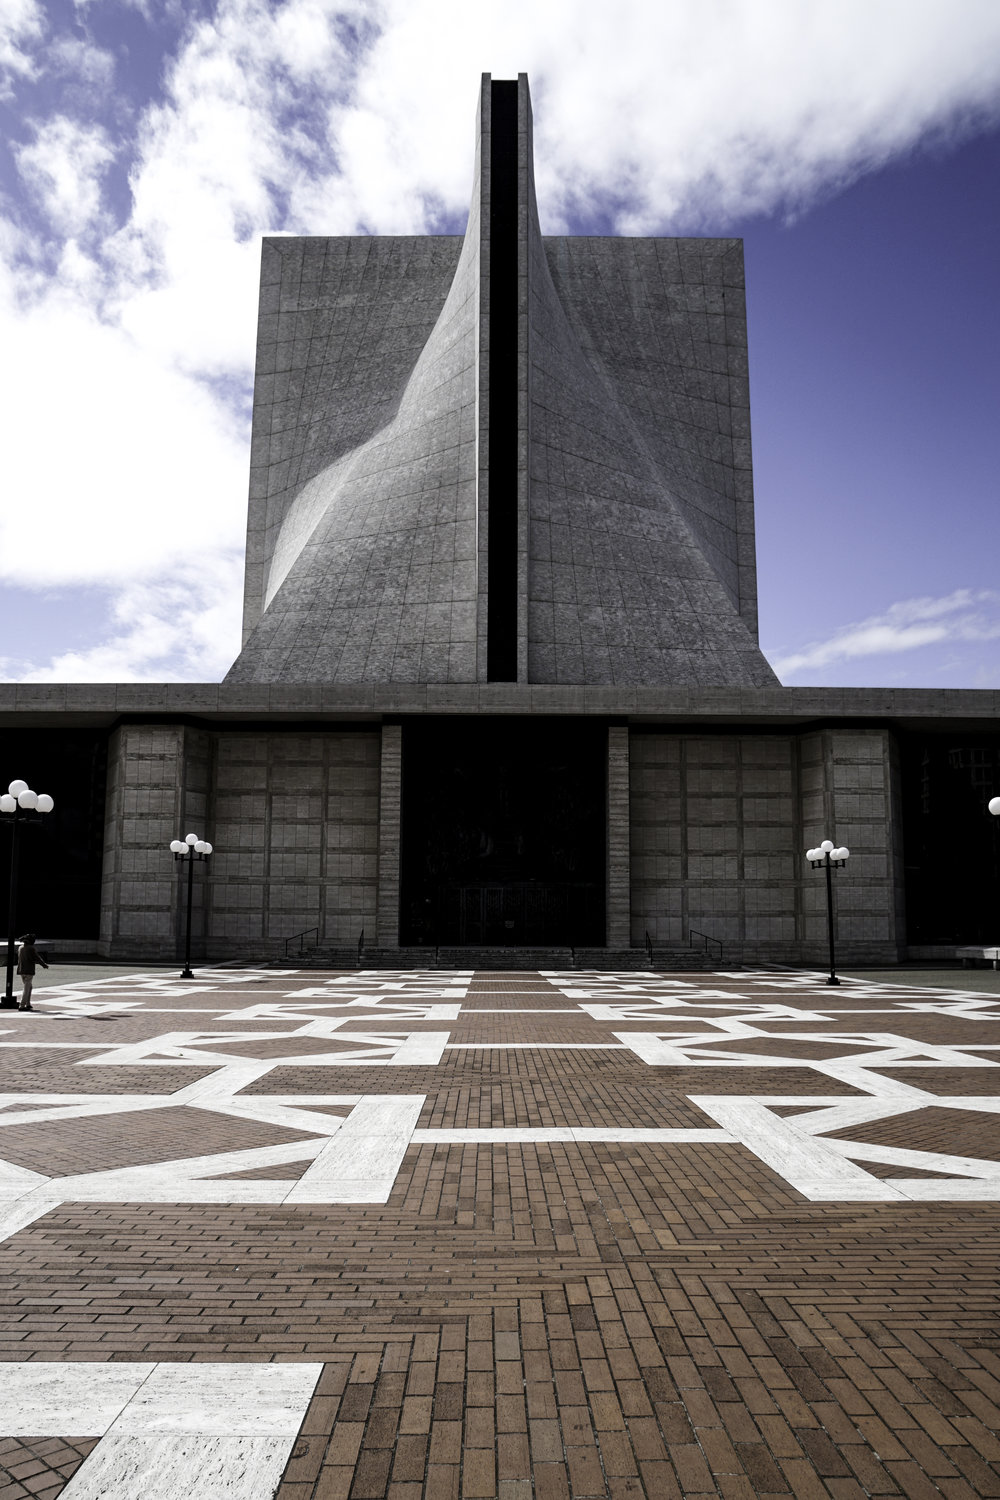 SAINT MARY'S CATHEDRAL - Pietro Belluschi and Pier Luigi Nervi, 1971